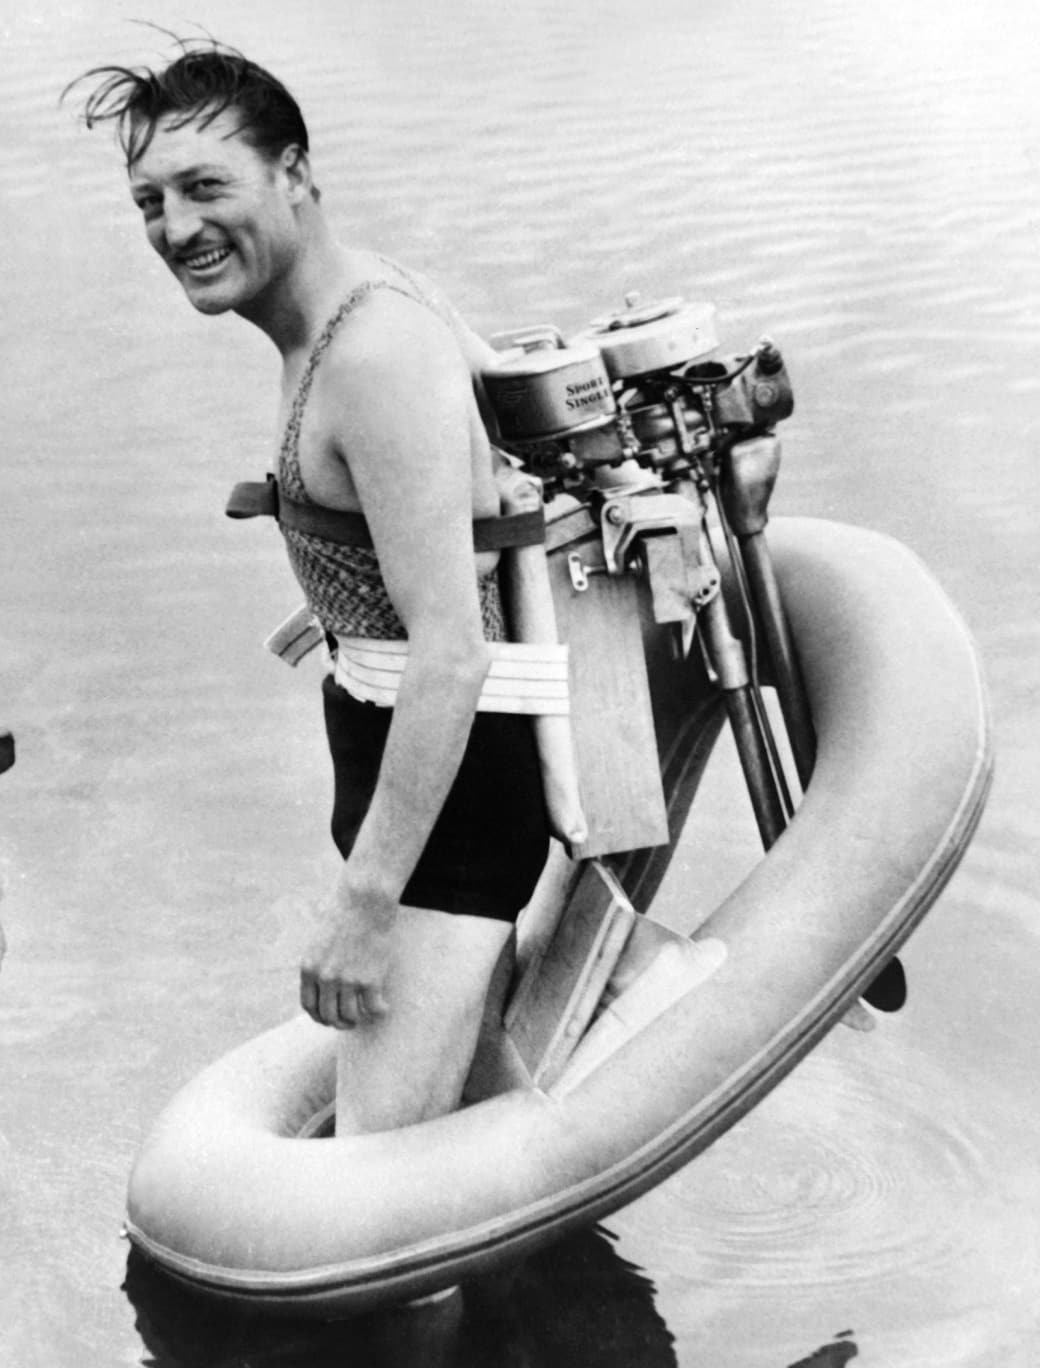 4. Cruising with your backpack boat propeller, circa 1940: